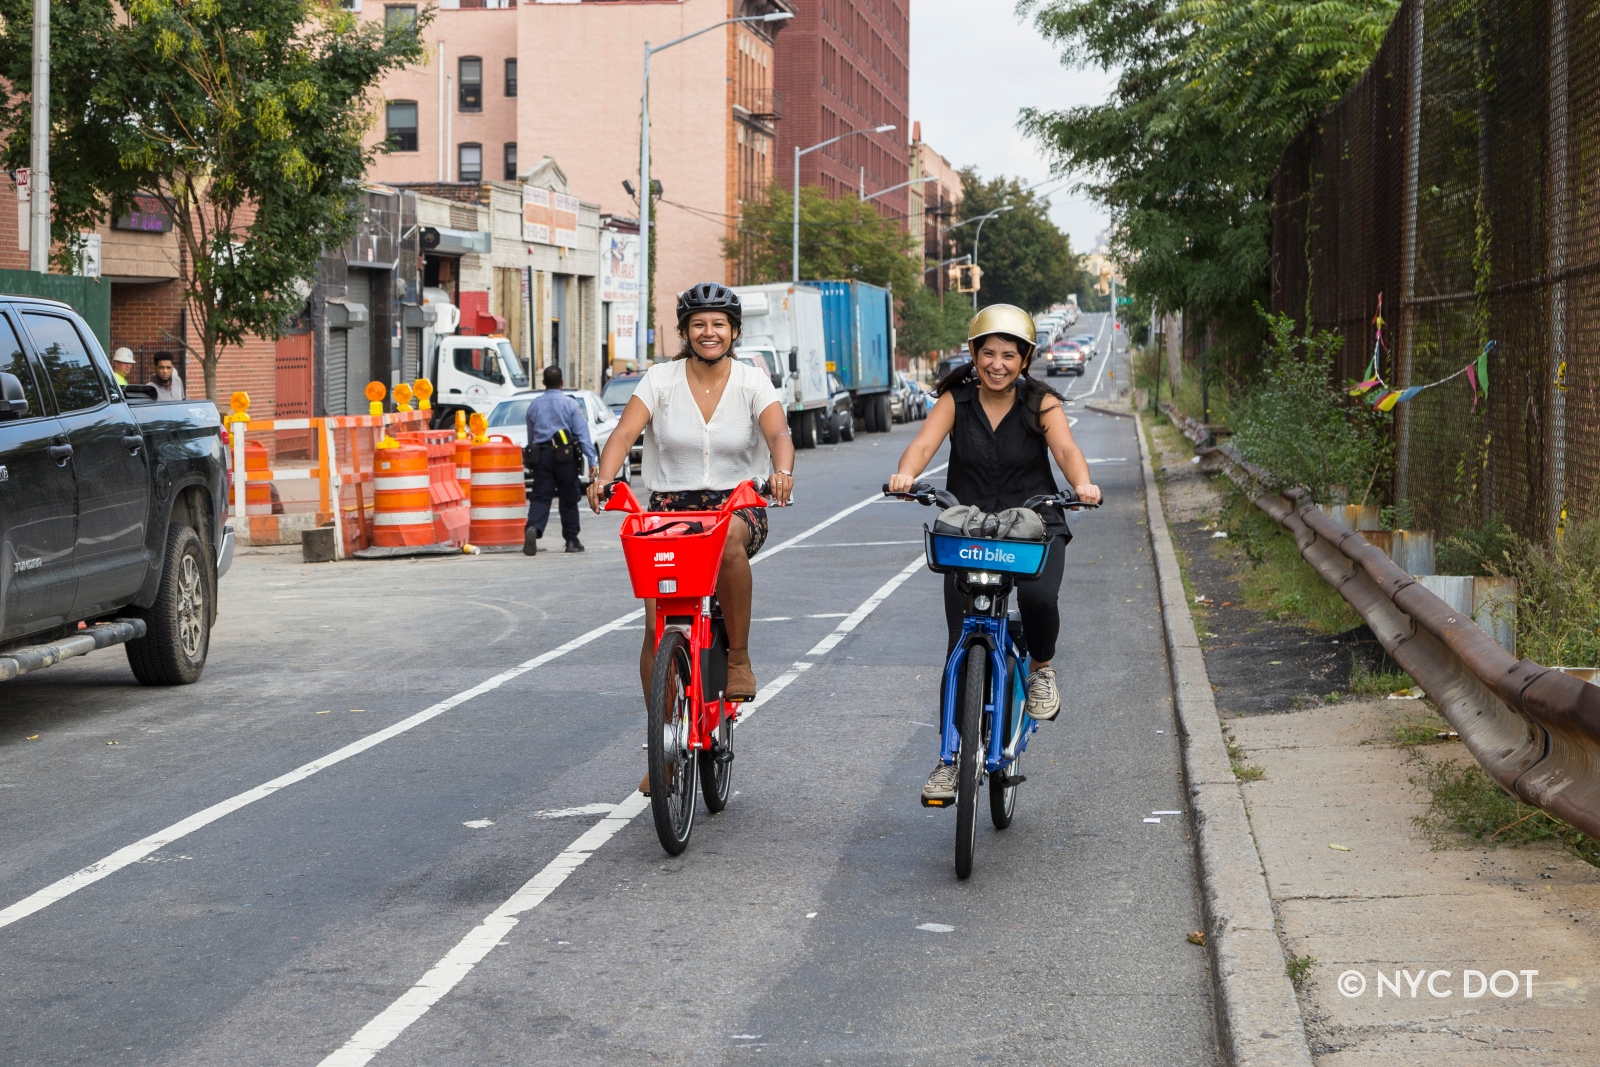 Two women riding dockless bike share in the Bronx. One is riding a red Jump bike, while the other is riding a blue Citi Bike.